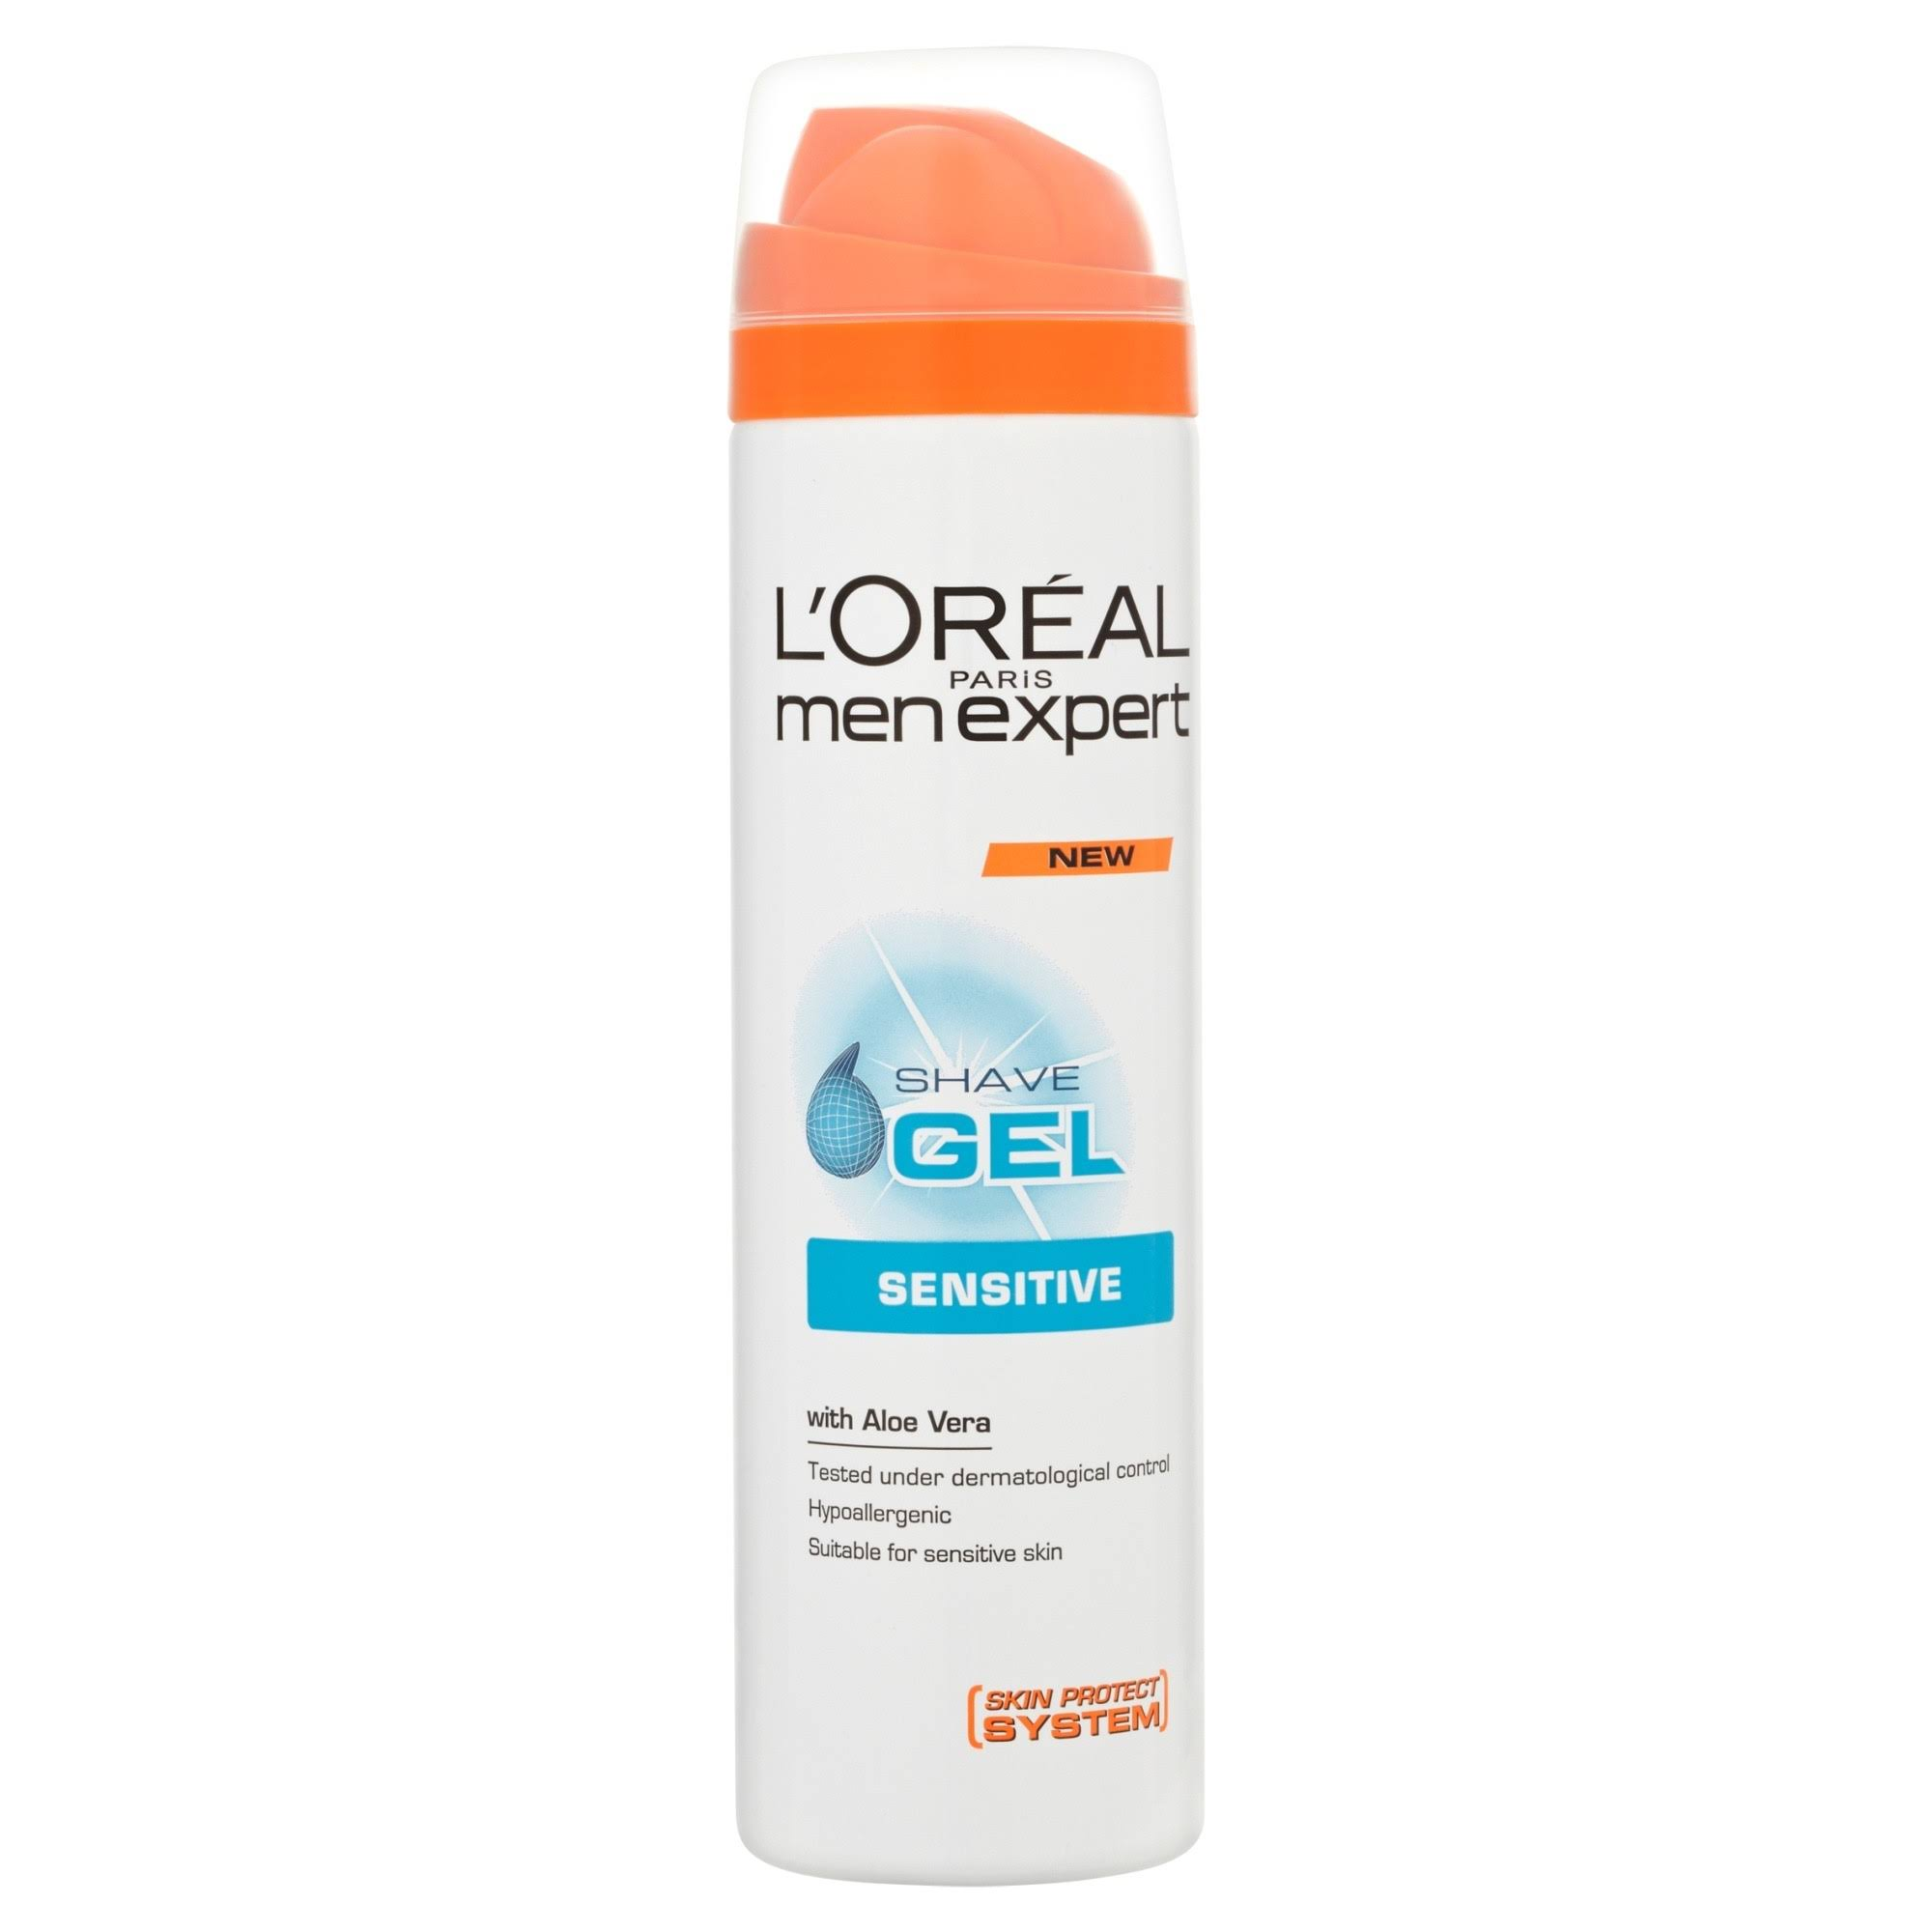 L'Oreal Men Expert Sensitive Shave Gel - 200ml